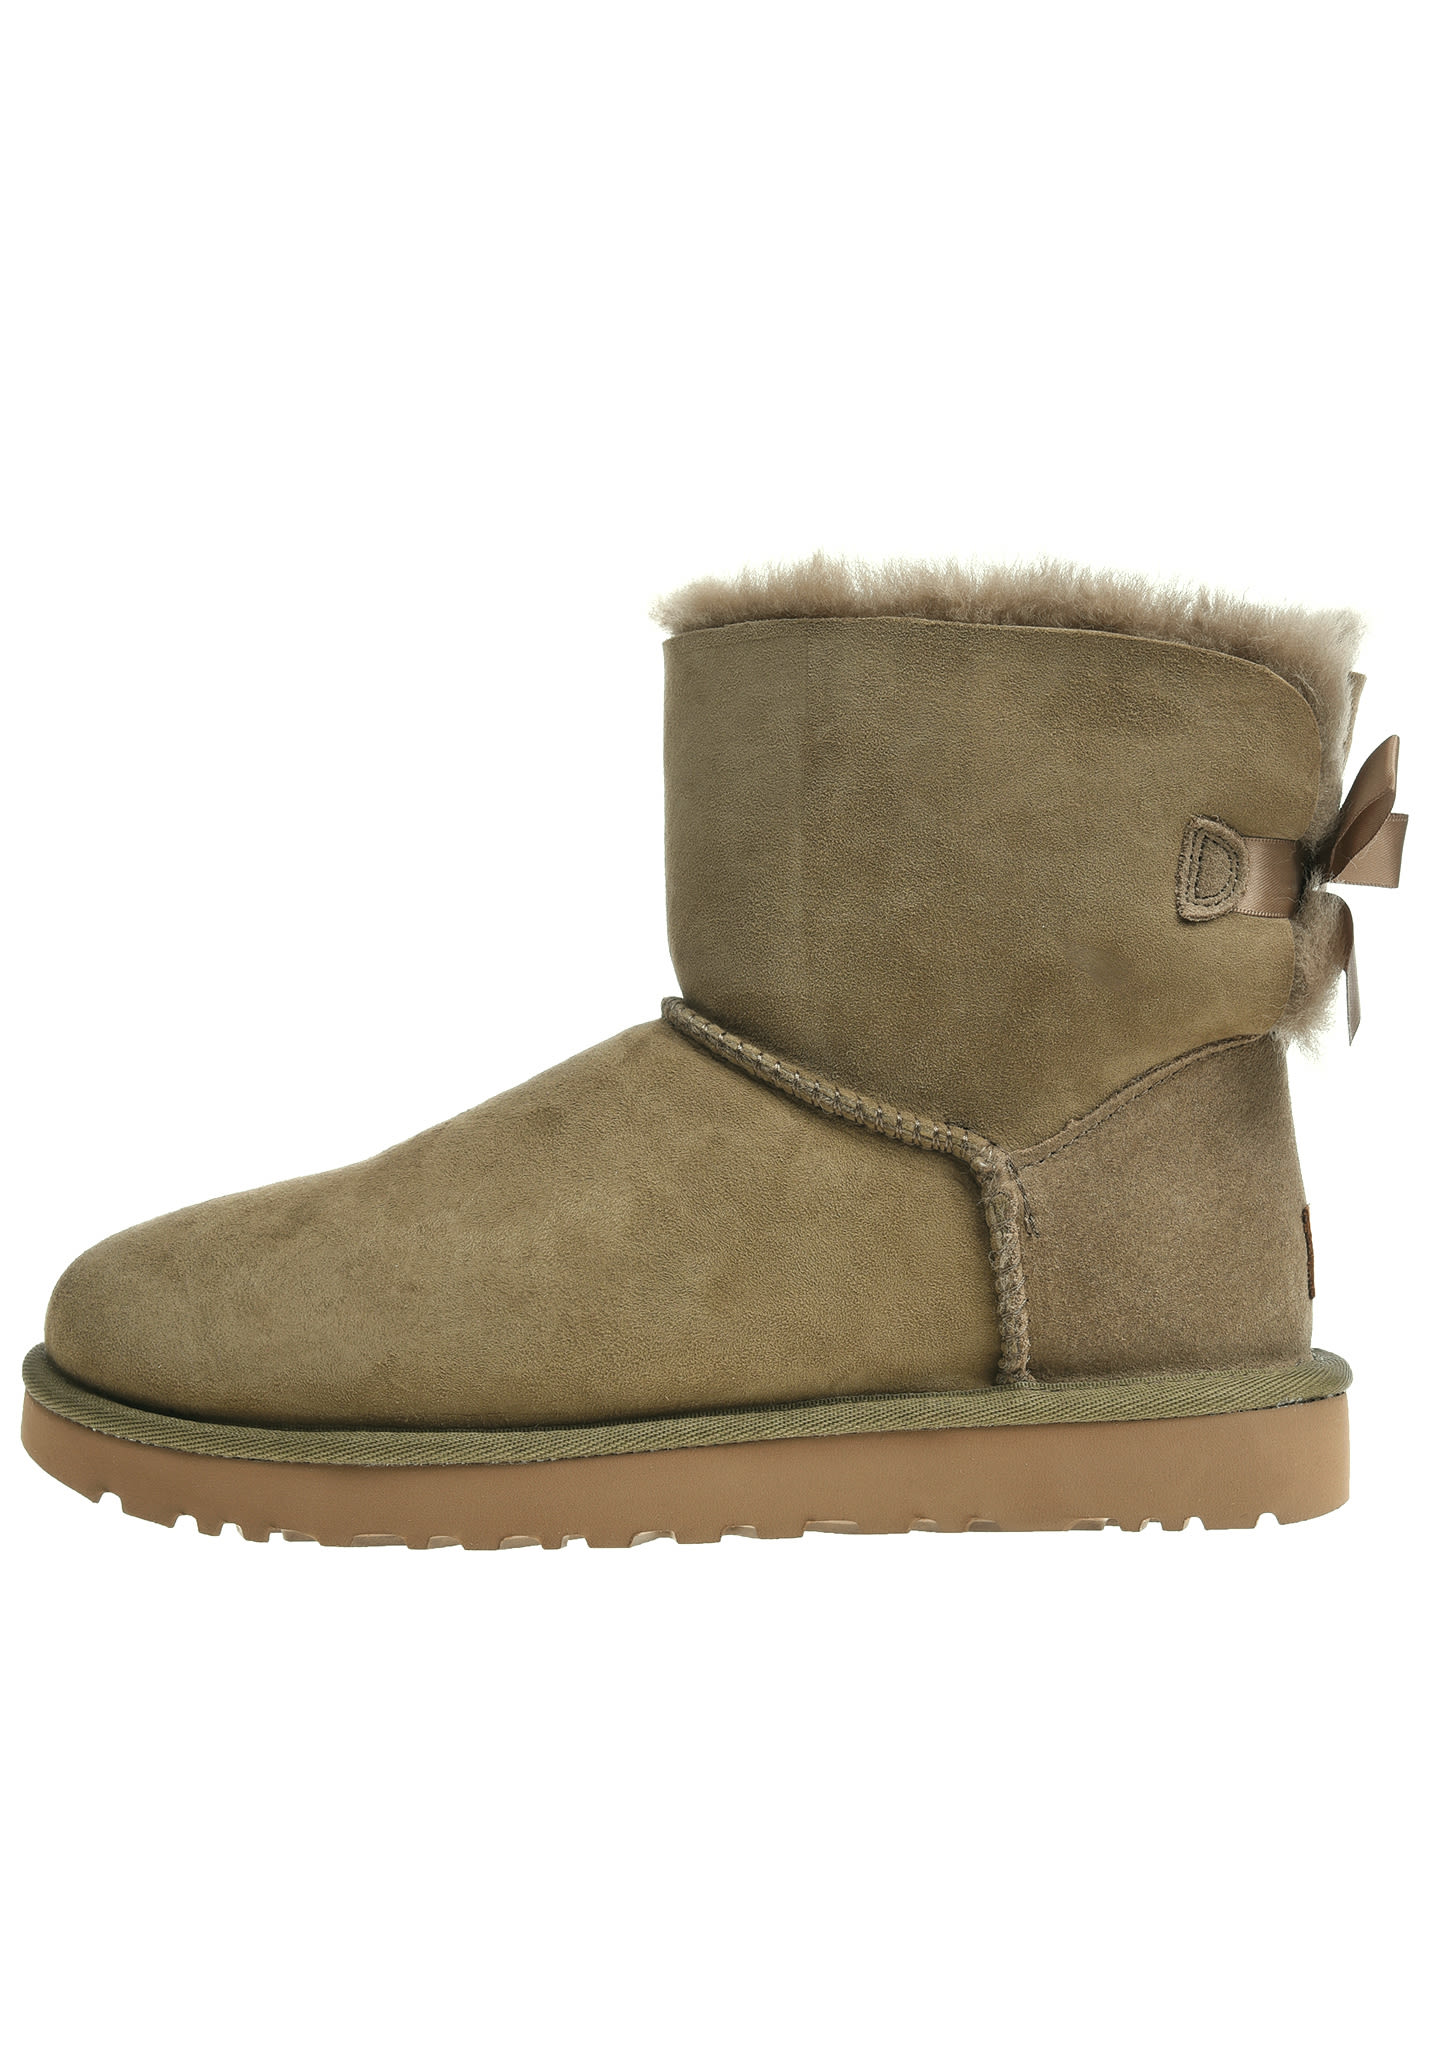 7be8872a437 UGG Mini Bailey Bow II - Boots for Women - Brown